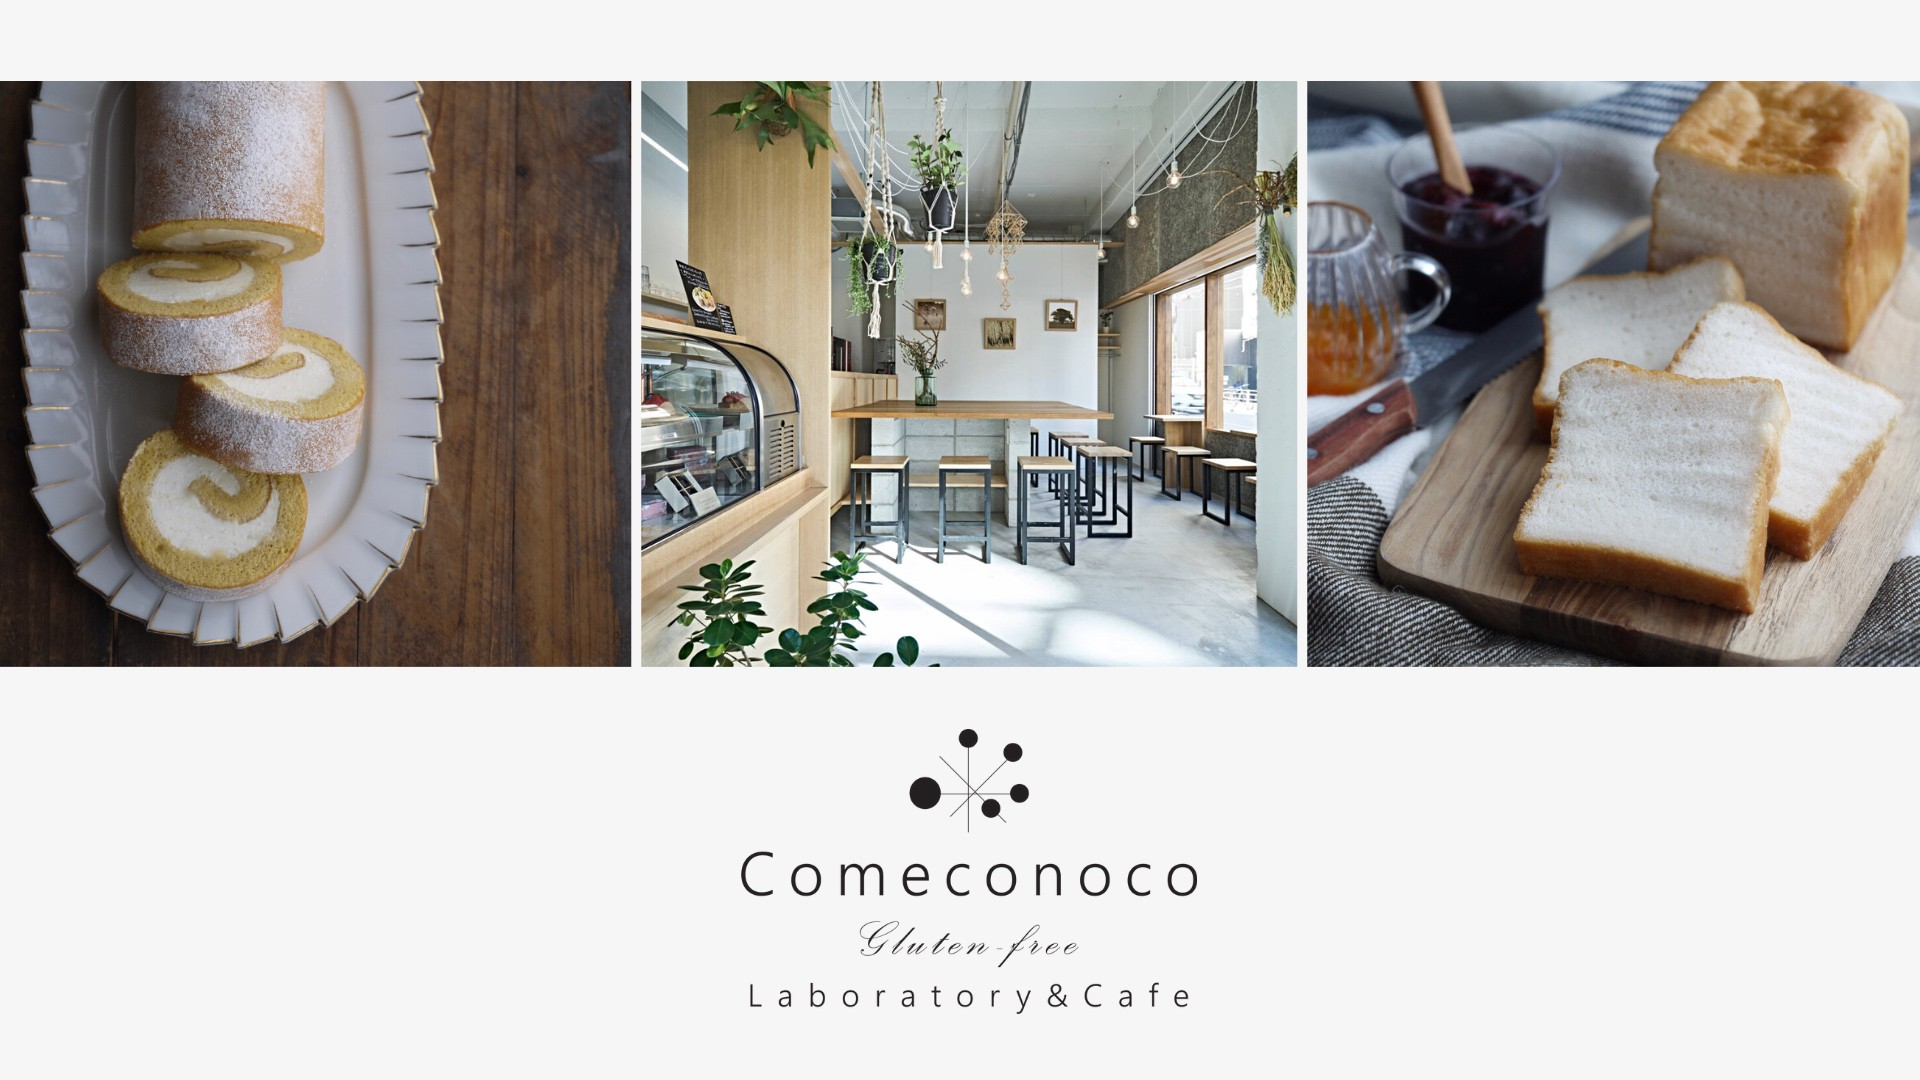 Comeconoco Laboratory & Cafe